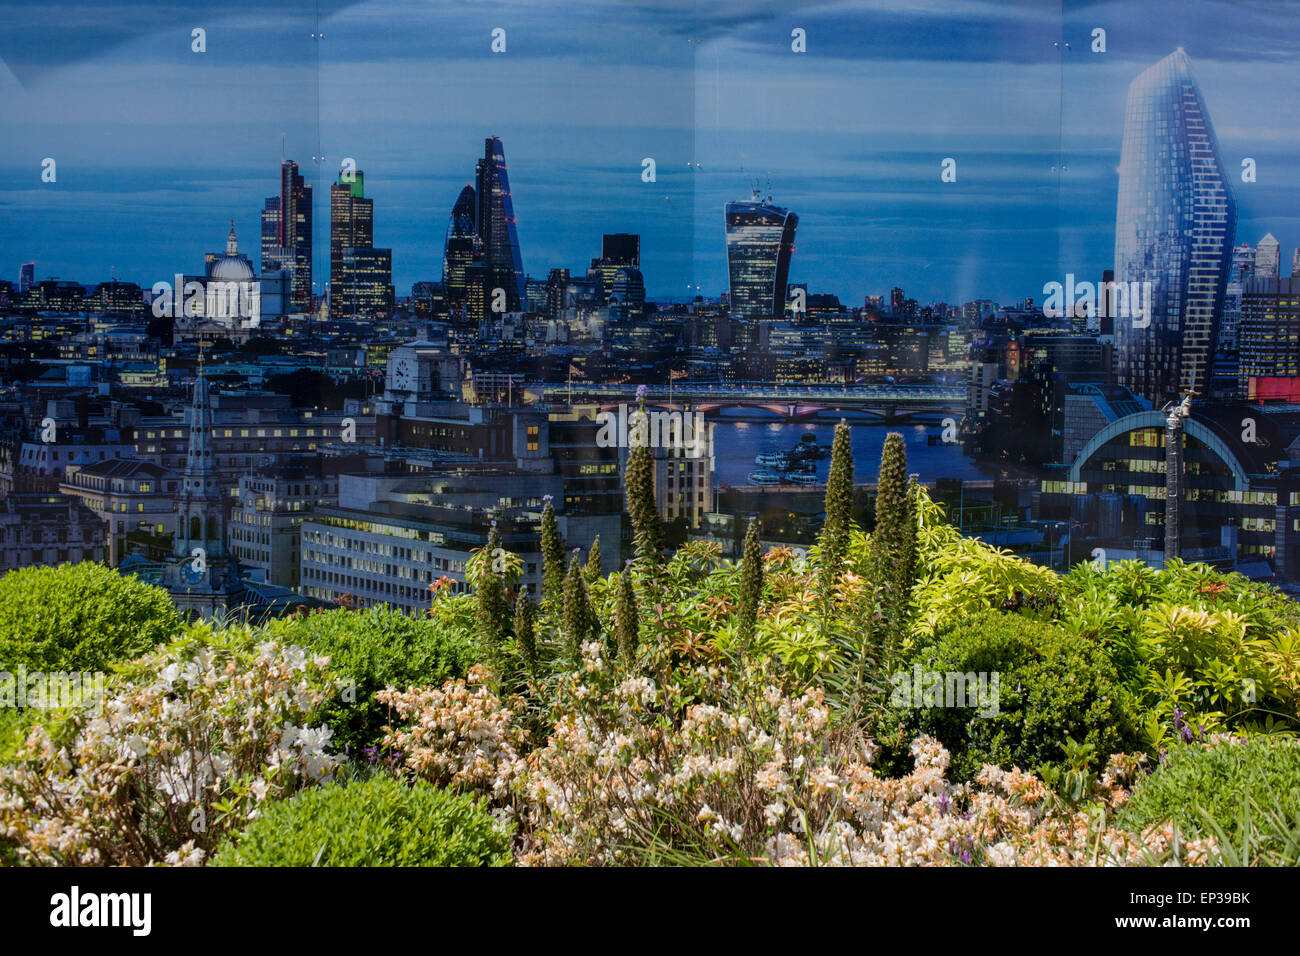 One Blackfriars property development marketing suite hoarding landscape, symbolising increasing private ownership - Stock Image